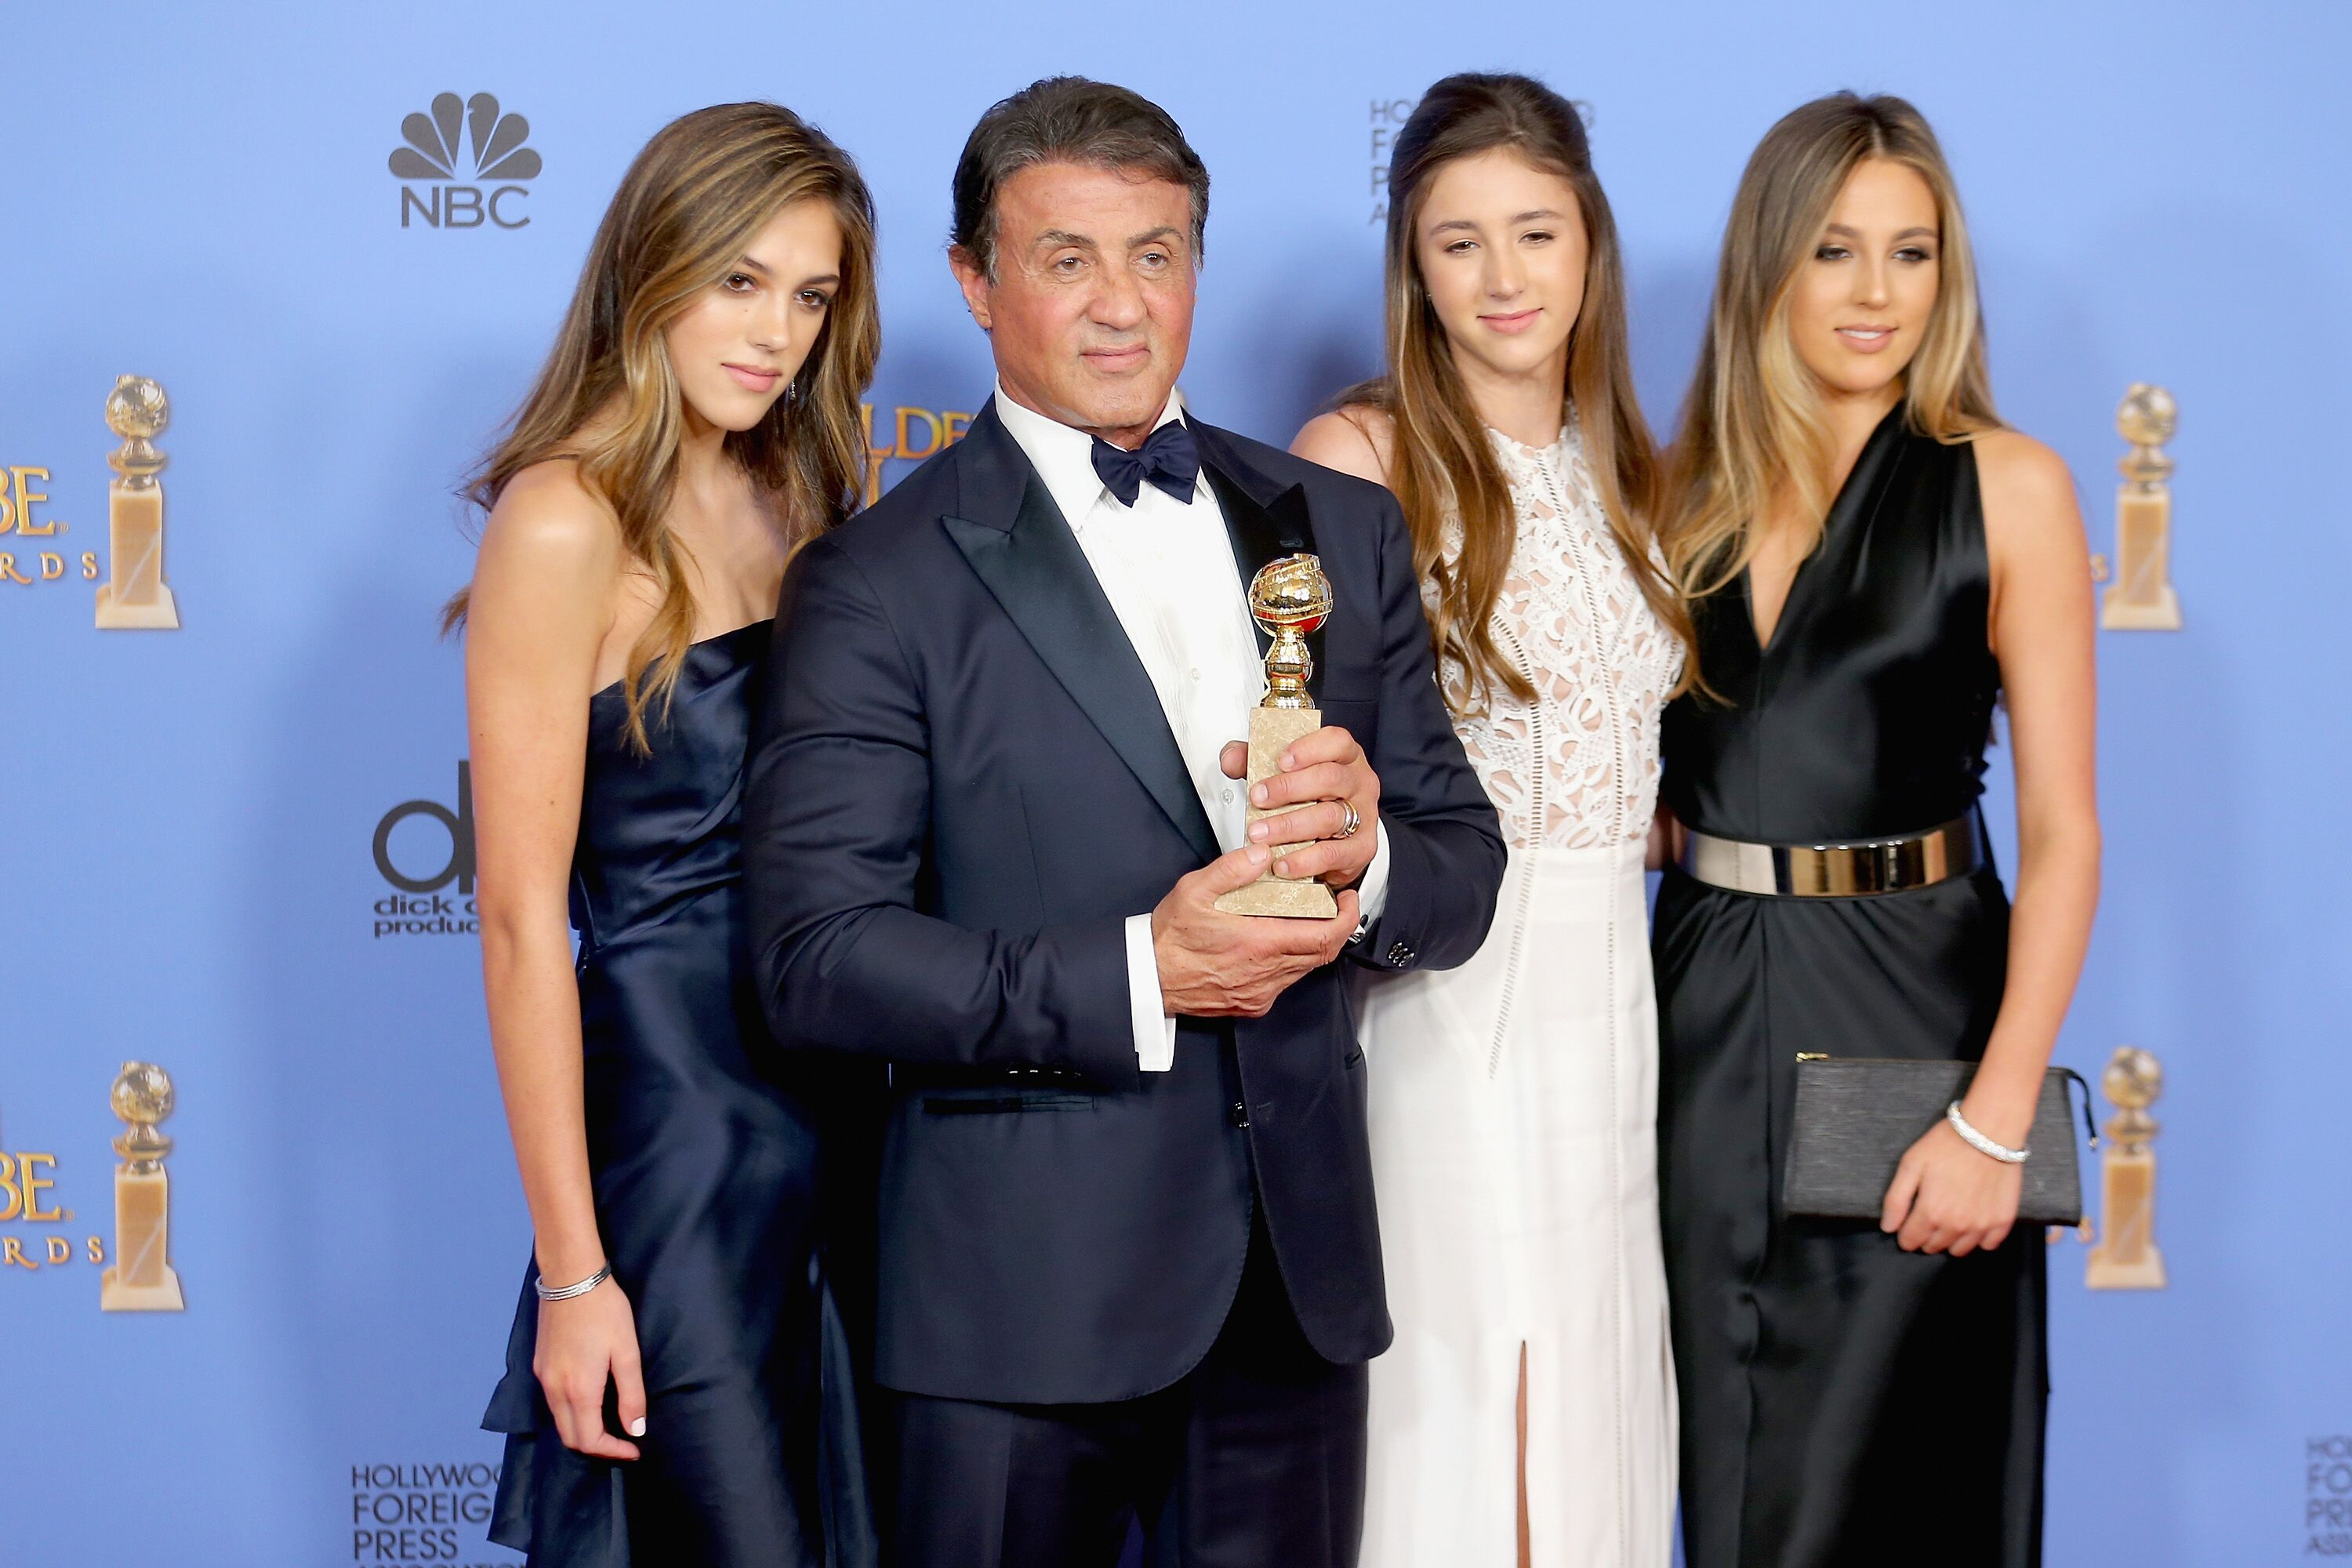 Sylvester Stallone with his daughters Sistine, Sophia and Scarlet at the 73rd Annual Golden Globes | Getty Images / Global Images Ukraine